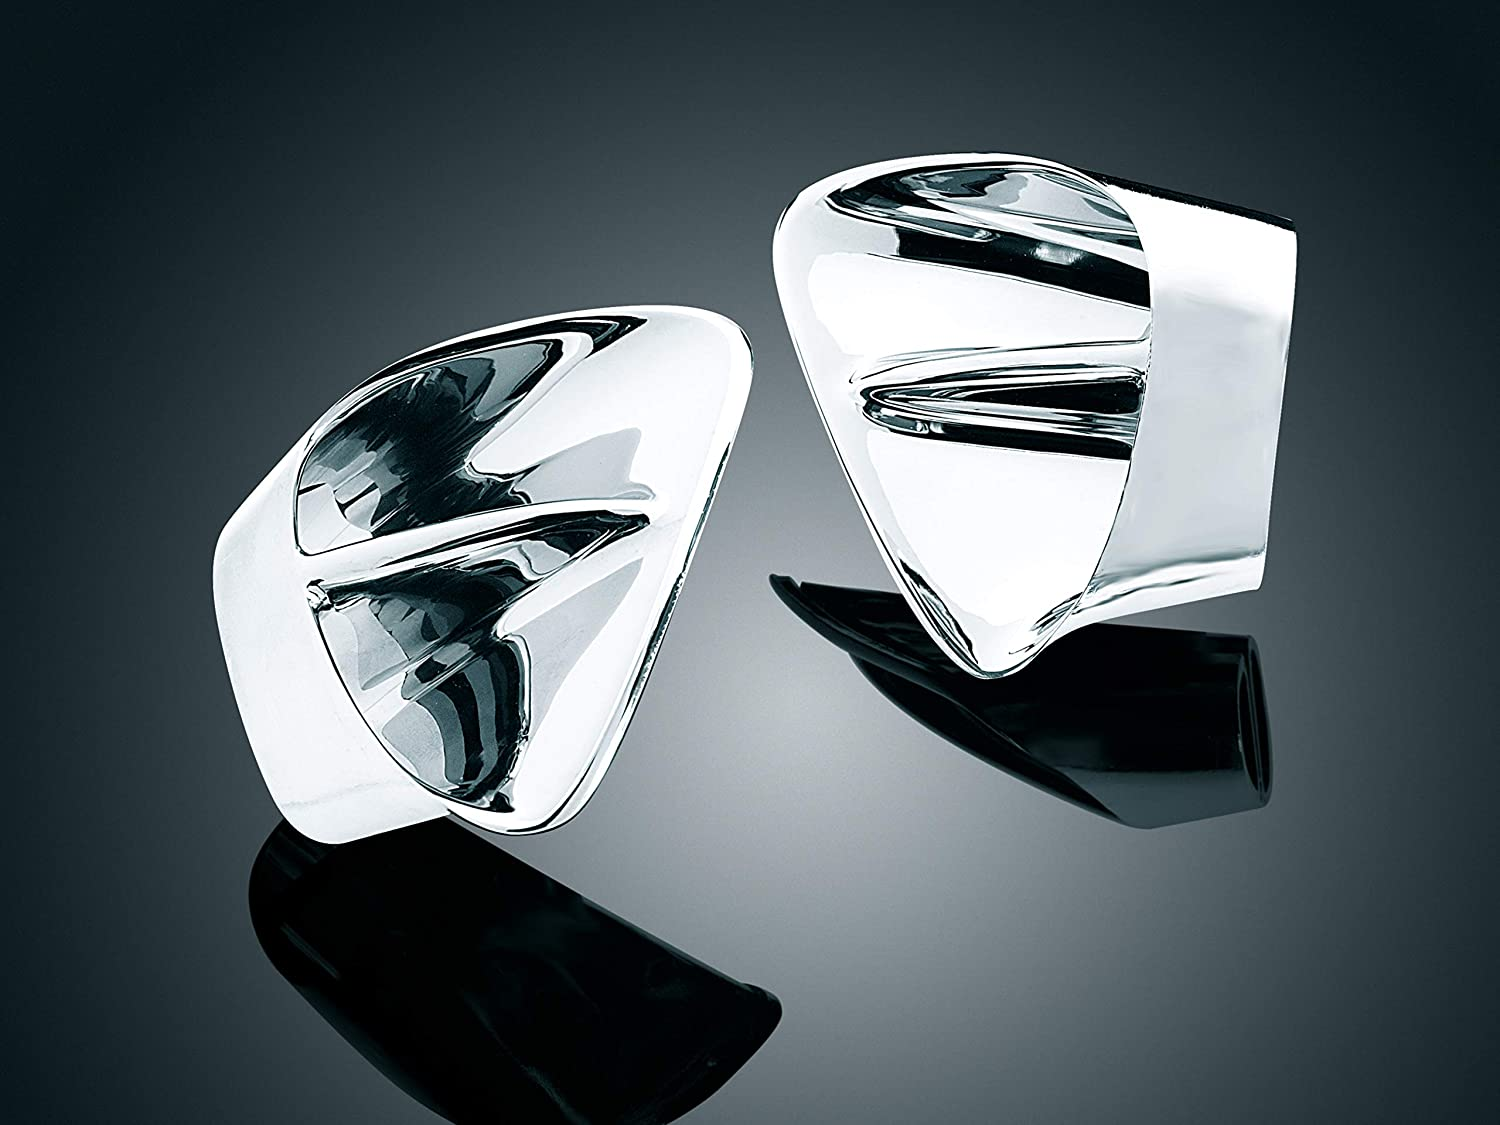 1 Pair Fairing Intake Vent Inserts for 2001-10 Honda Gold Wing GL1800 Motorcycles Kuryakyn 3900 Motorcycle Accent Accessory Chrome